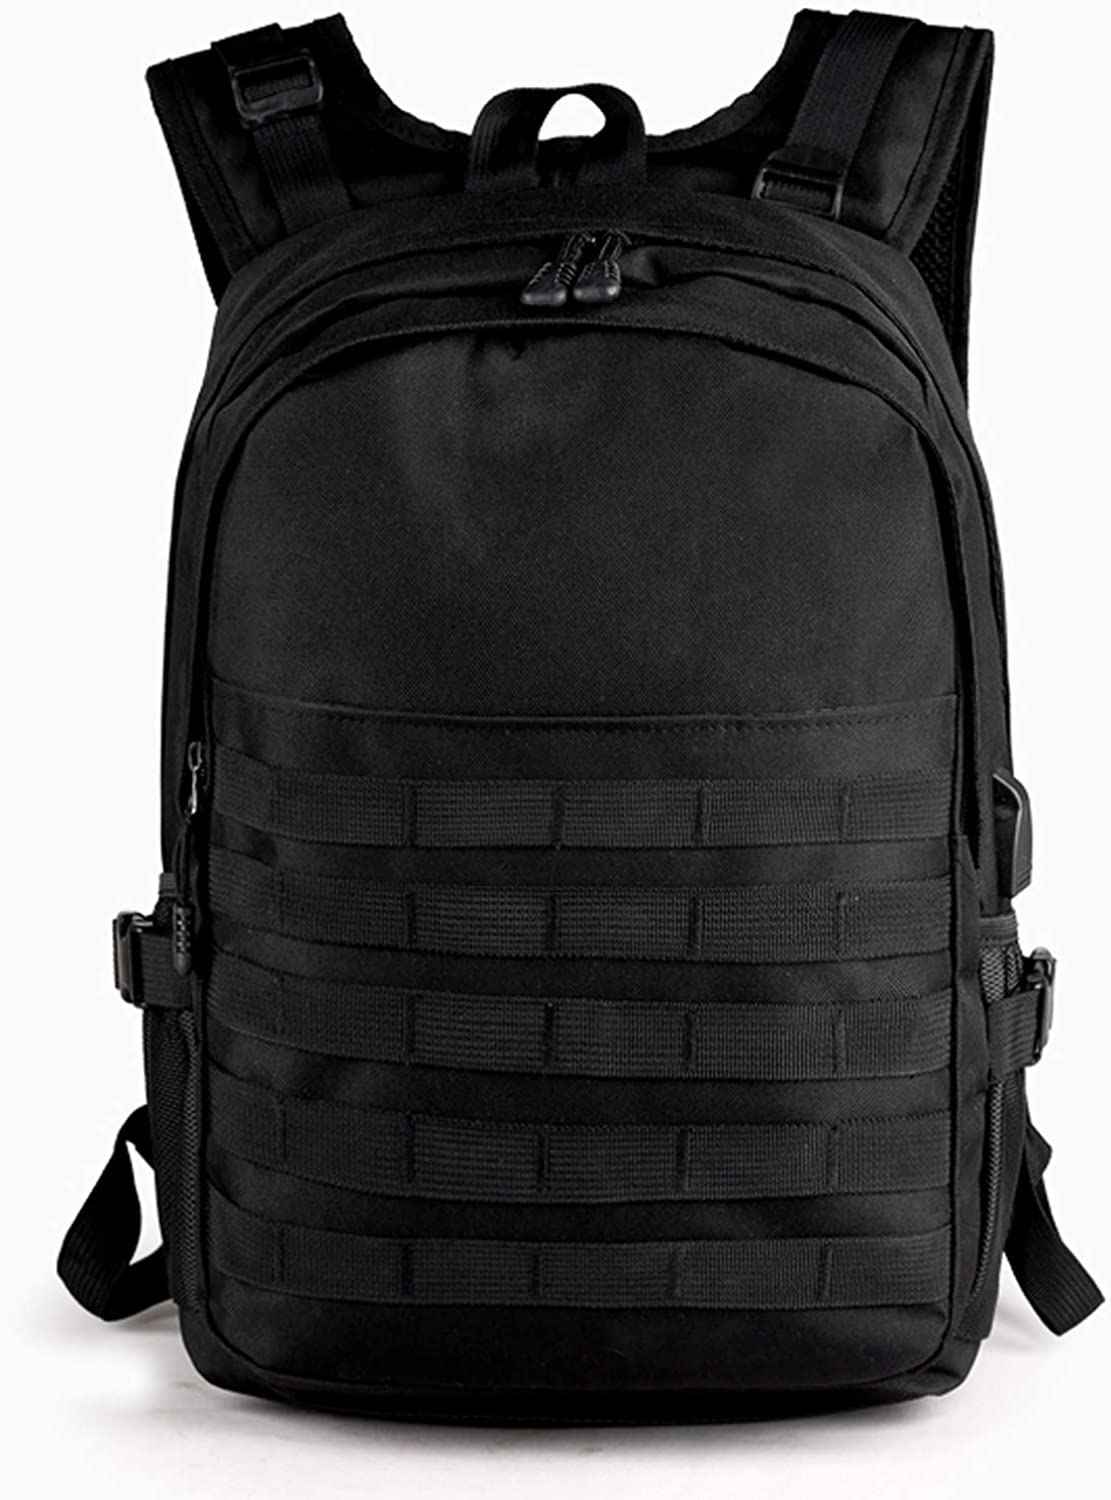 Youmay Military Tactical Backpack for Men, Outdoor Bow Hunting Backpack Travel Bag Assault Pack Army Molle Bug Out Rucksack USB Charging Port Motorcycle School Survival Hiking Camping